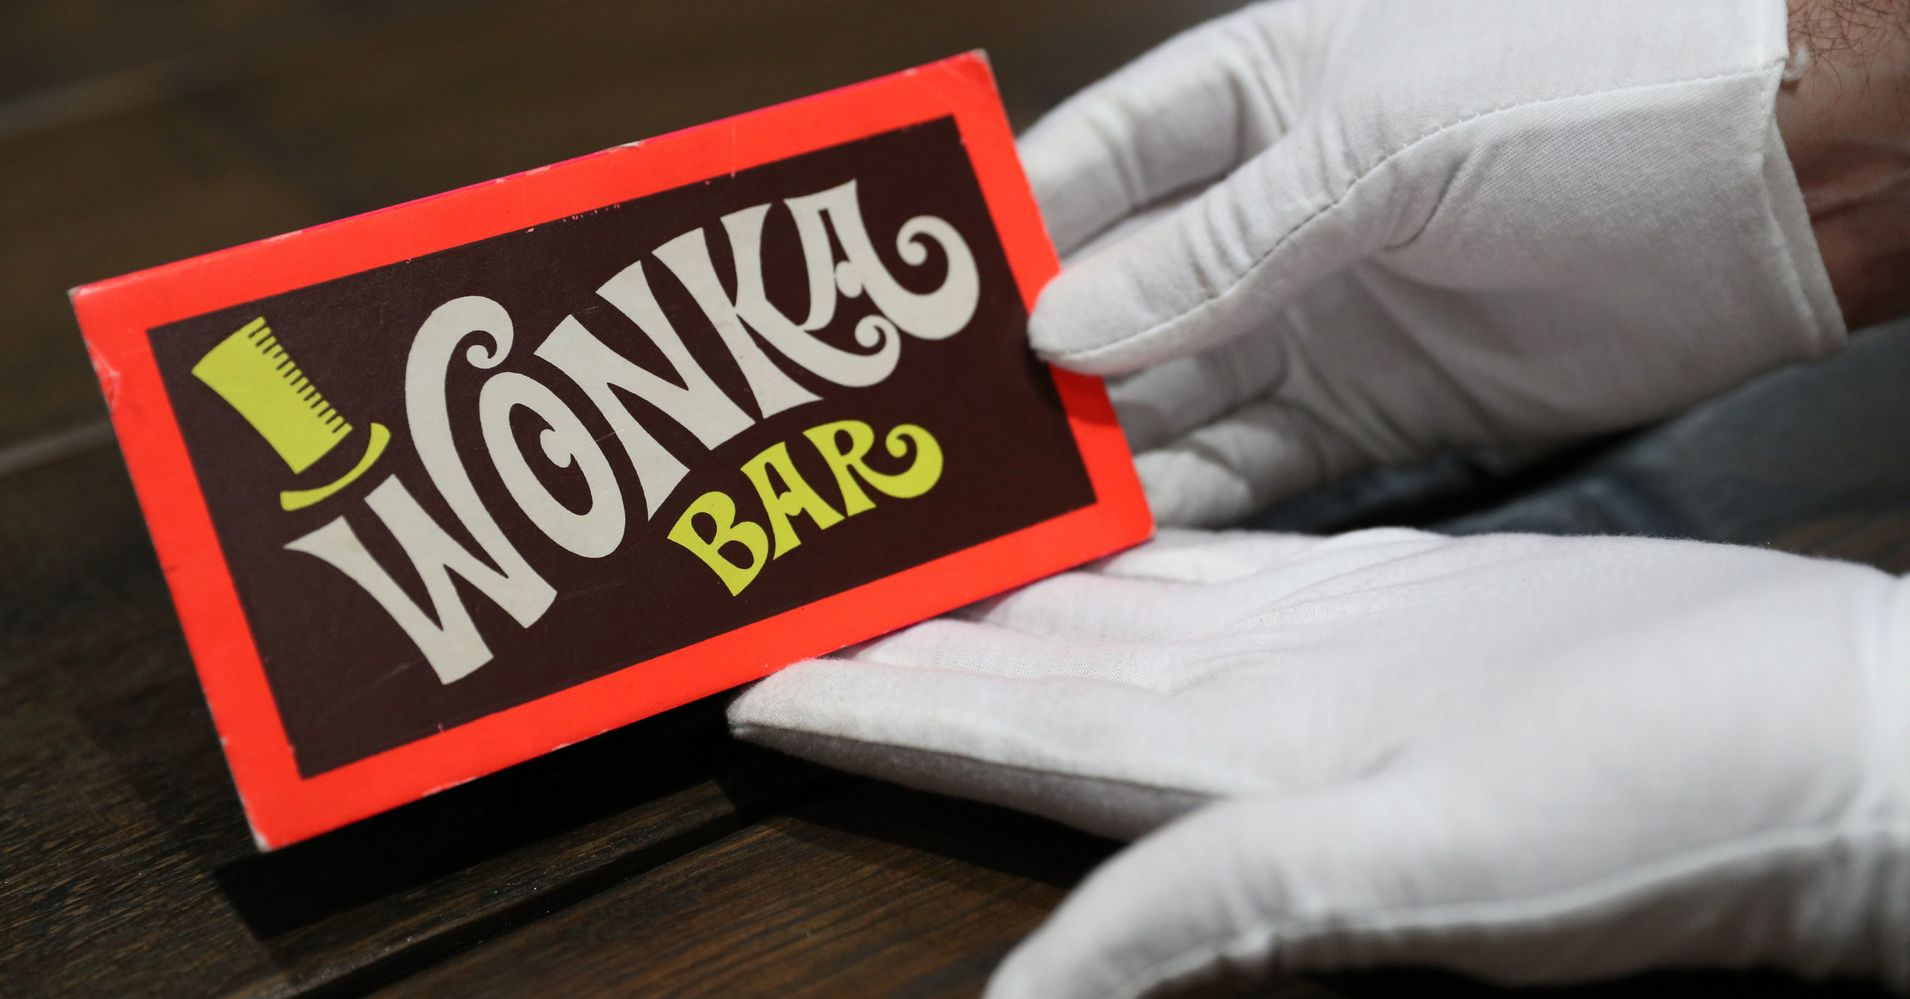 ?Willy Wonka,? A Real Person, Pleads Guilty To 60 Charges